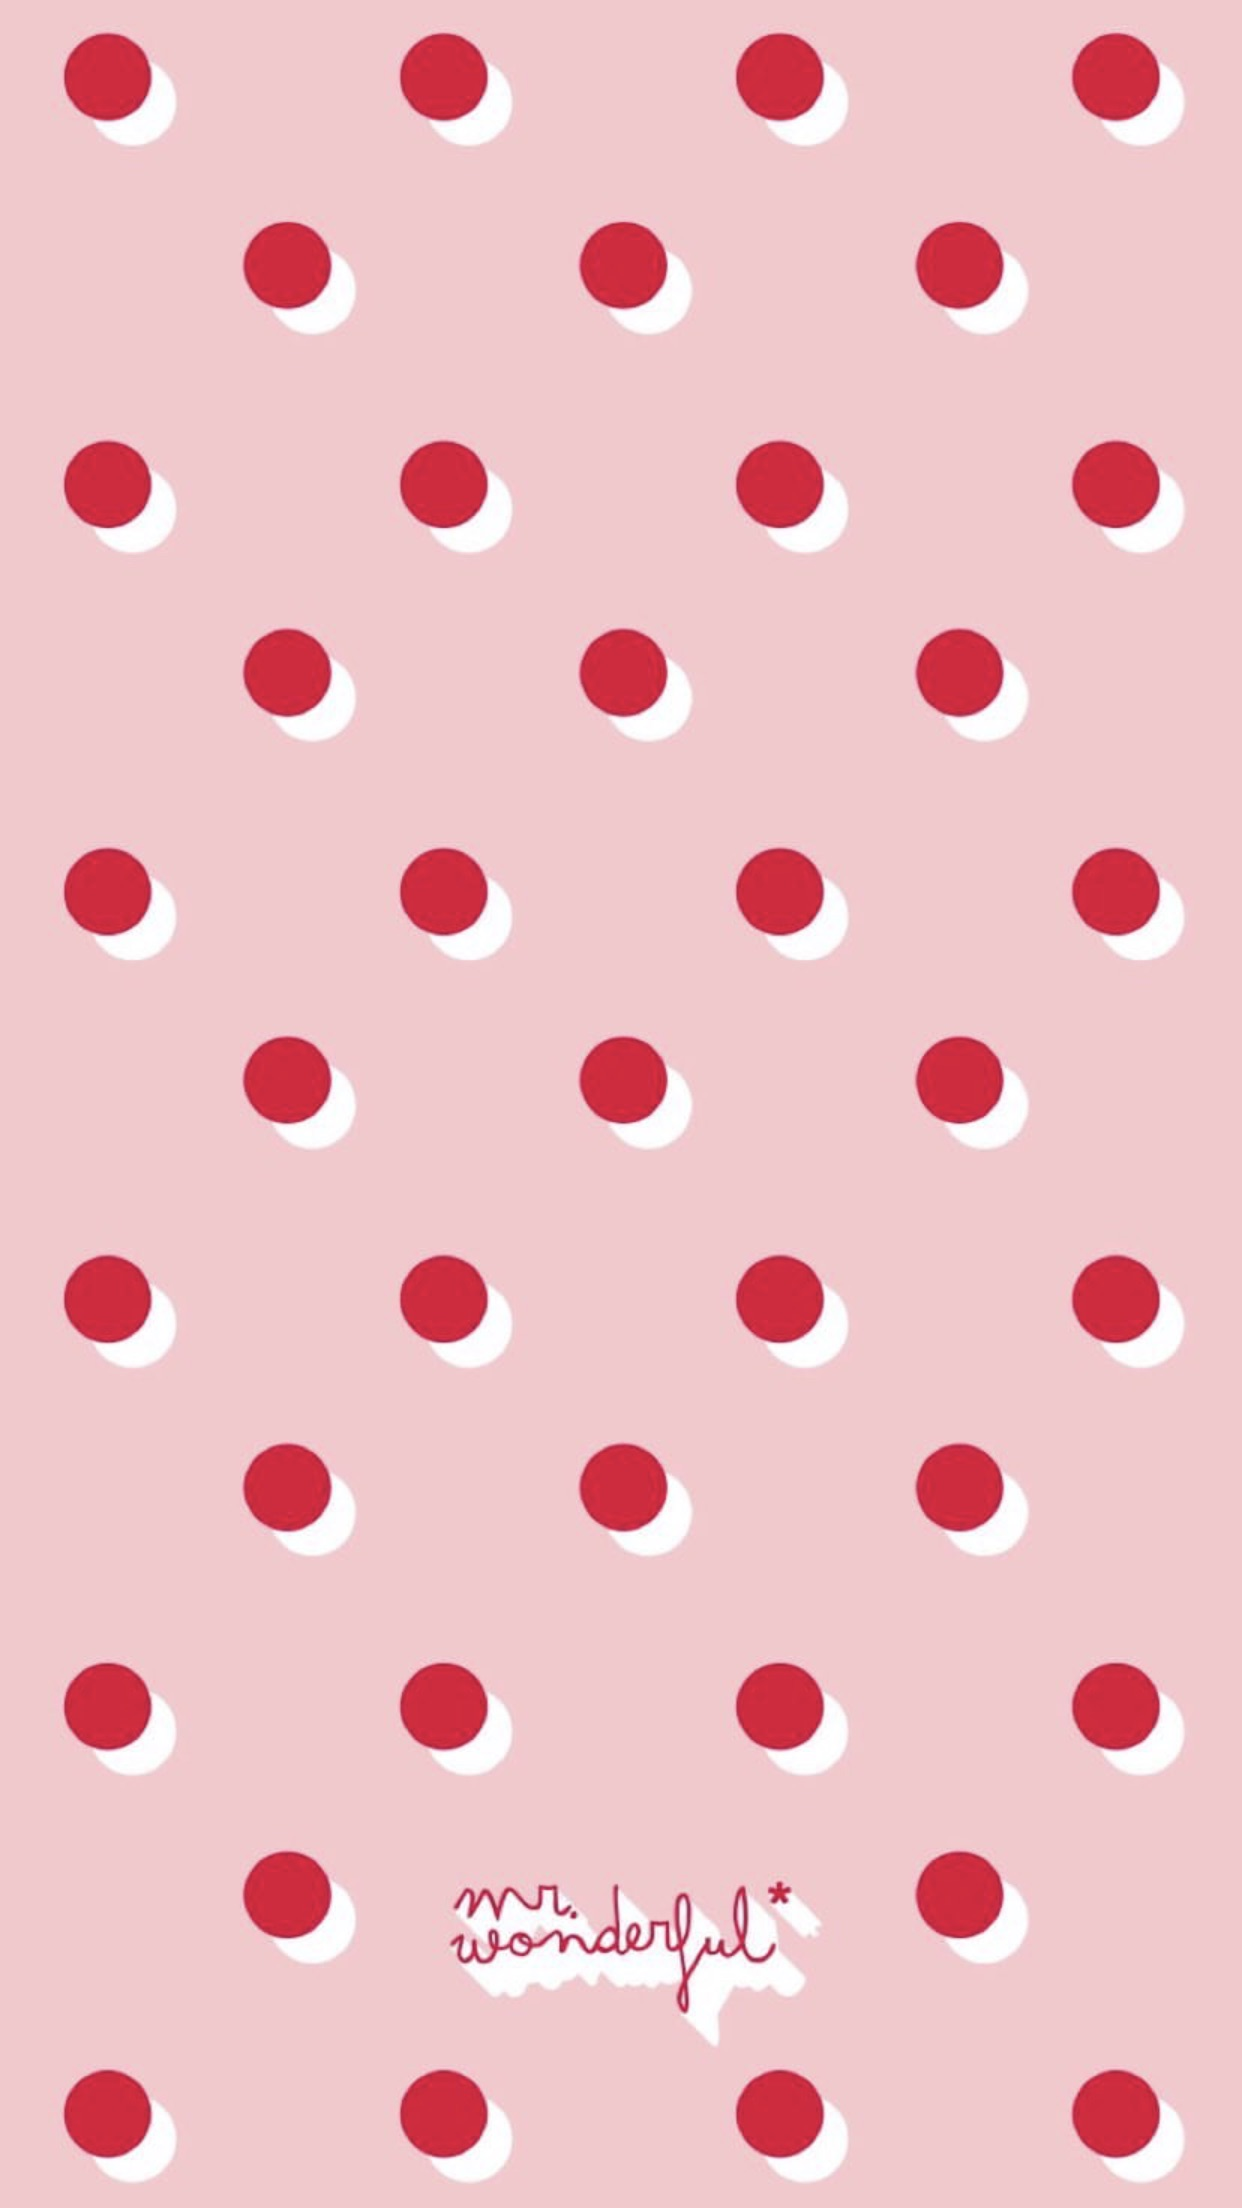 fondos de pantalla, fondo de pantalla, fondo de pantalla divertido, fondo de pantalla femenino, girly backgrounds, cool background, colorful backfround, fondo de pantalla patron, pattern, fondo de pantalla de puntos, fondo de pantalla rosa, dots background, pink background.